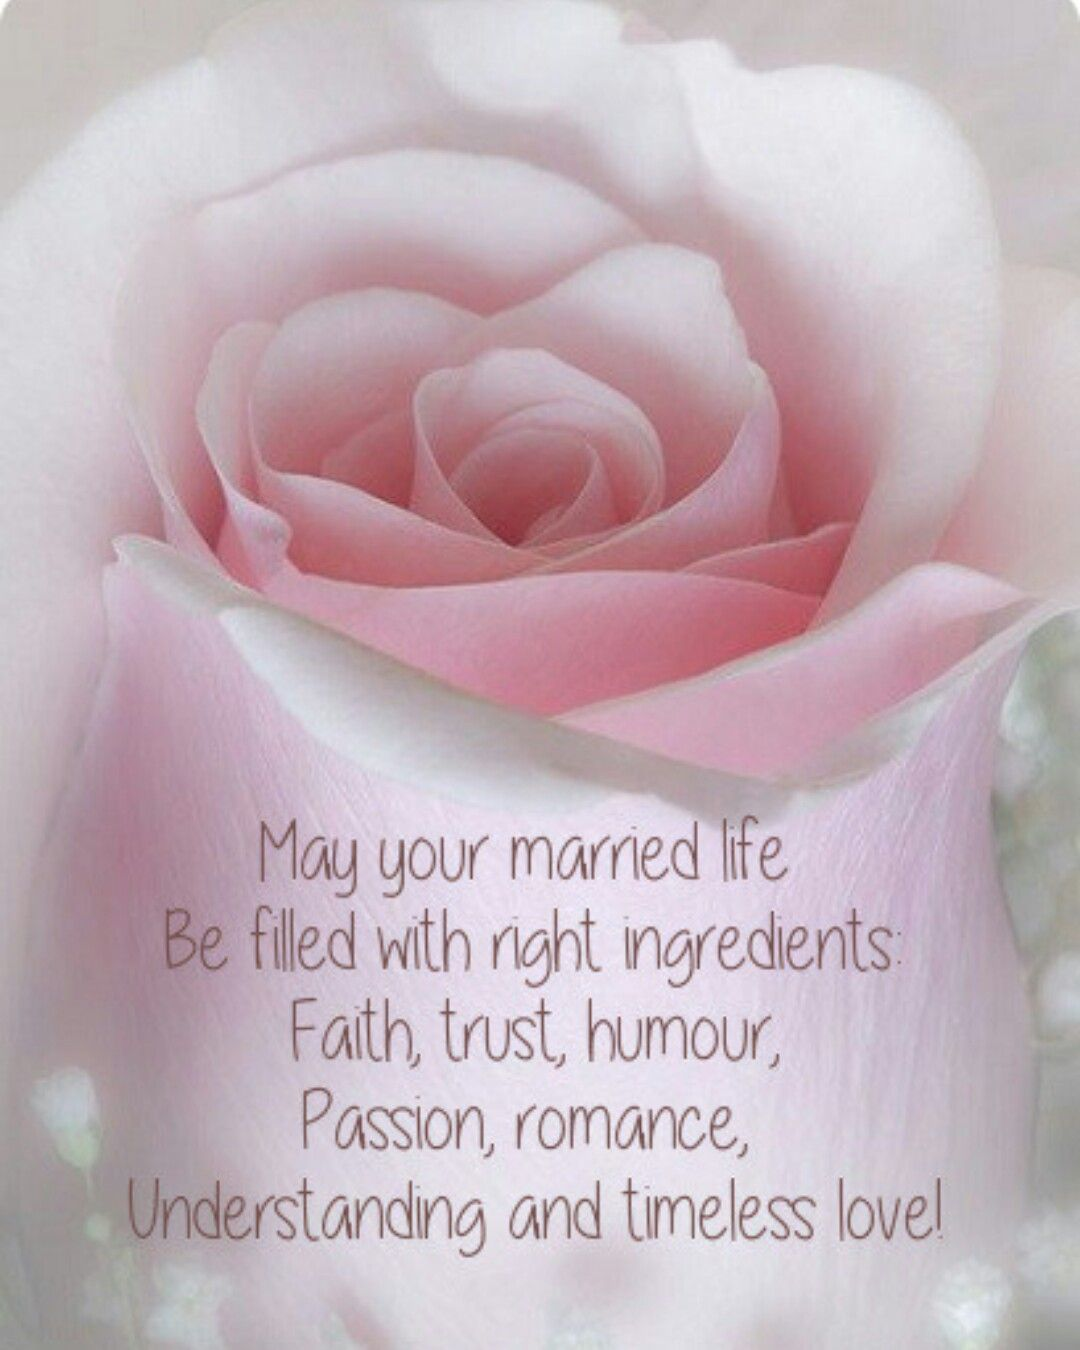 Best Time Of Day For Wedding: May Your Married Life Be Filled With Right Ingredients